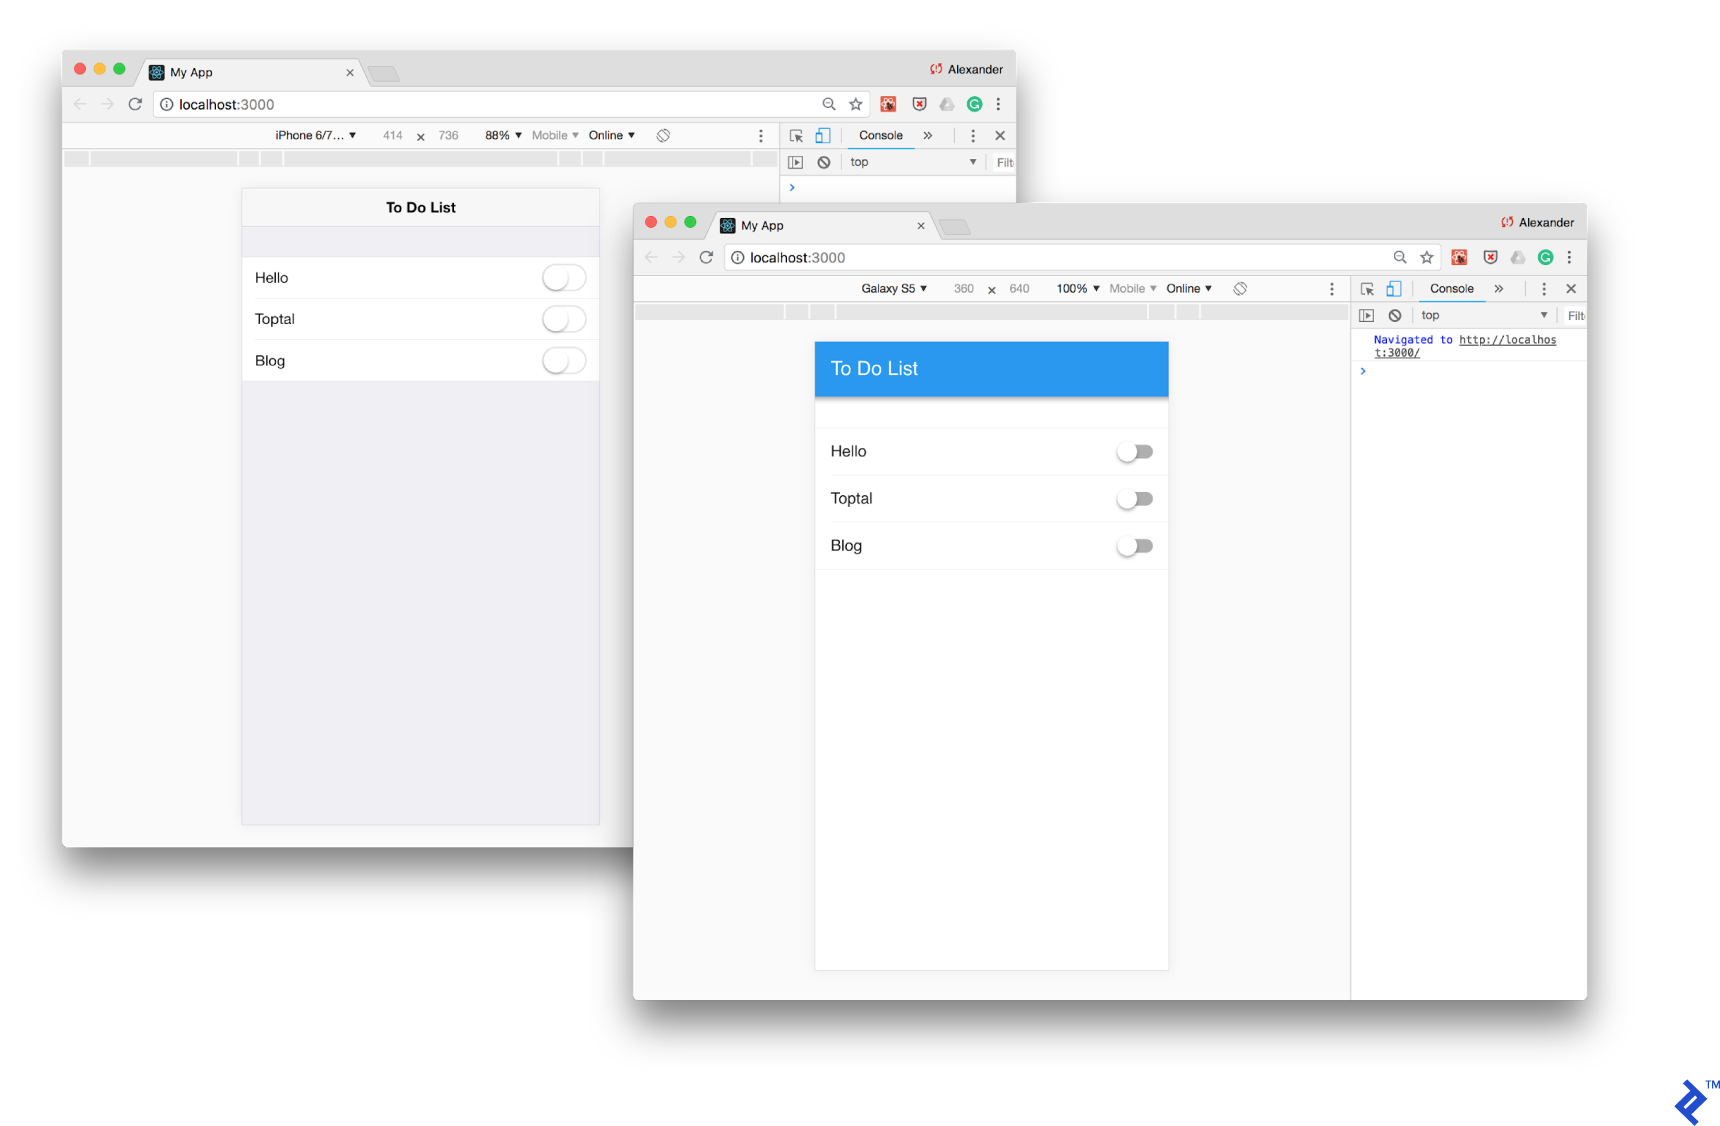 Our static To Do List layout test running in Framework7, simulated by Chrome DevTools in Android and iOS modes